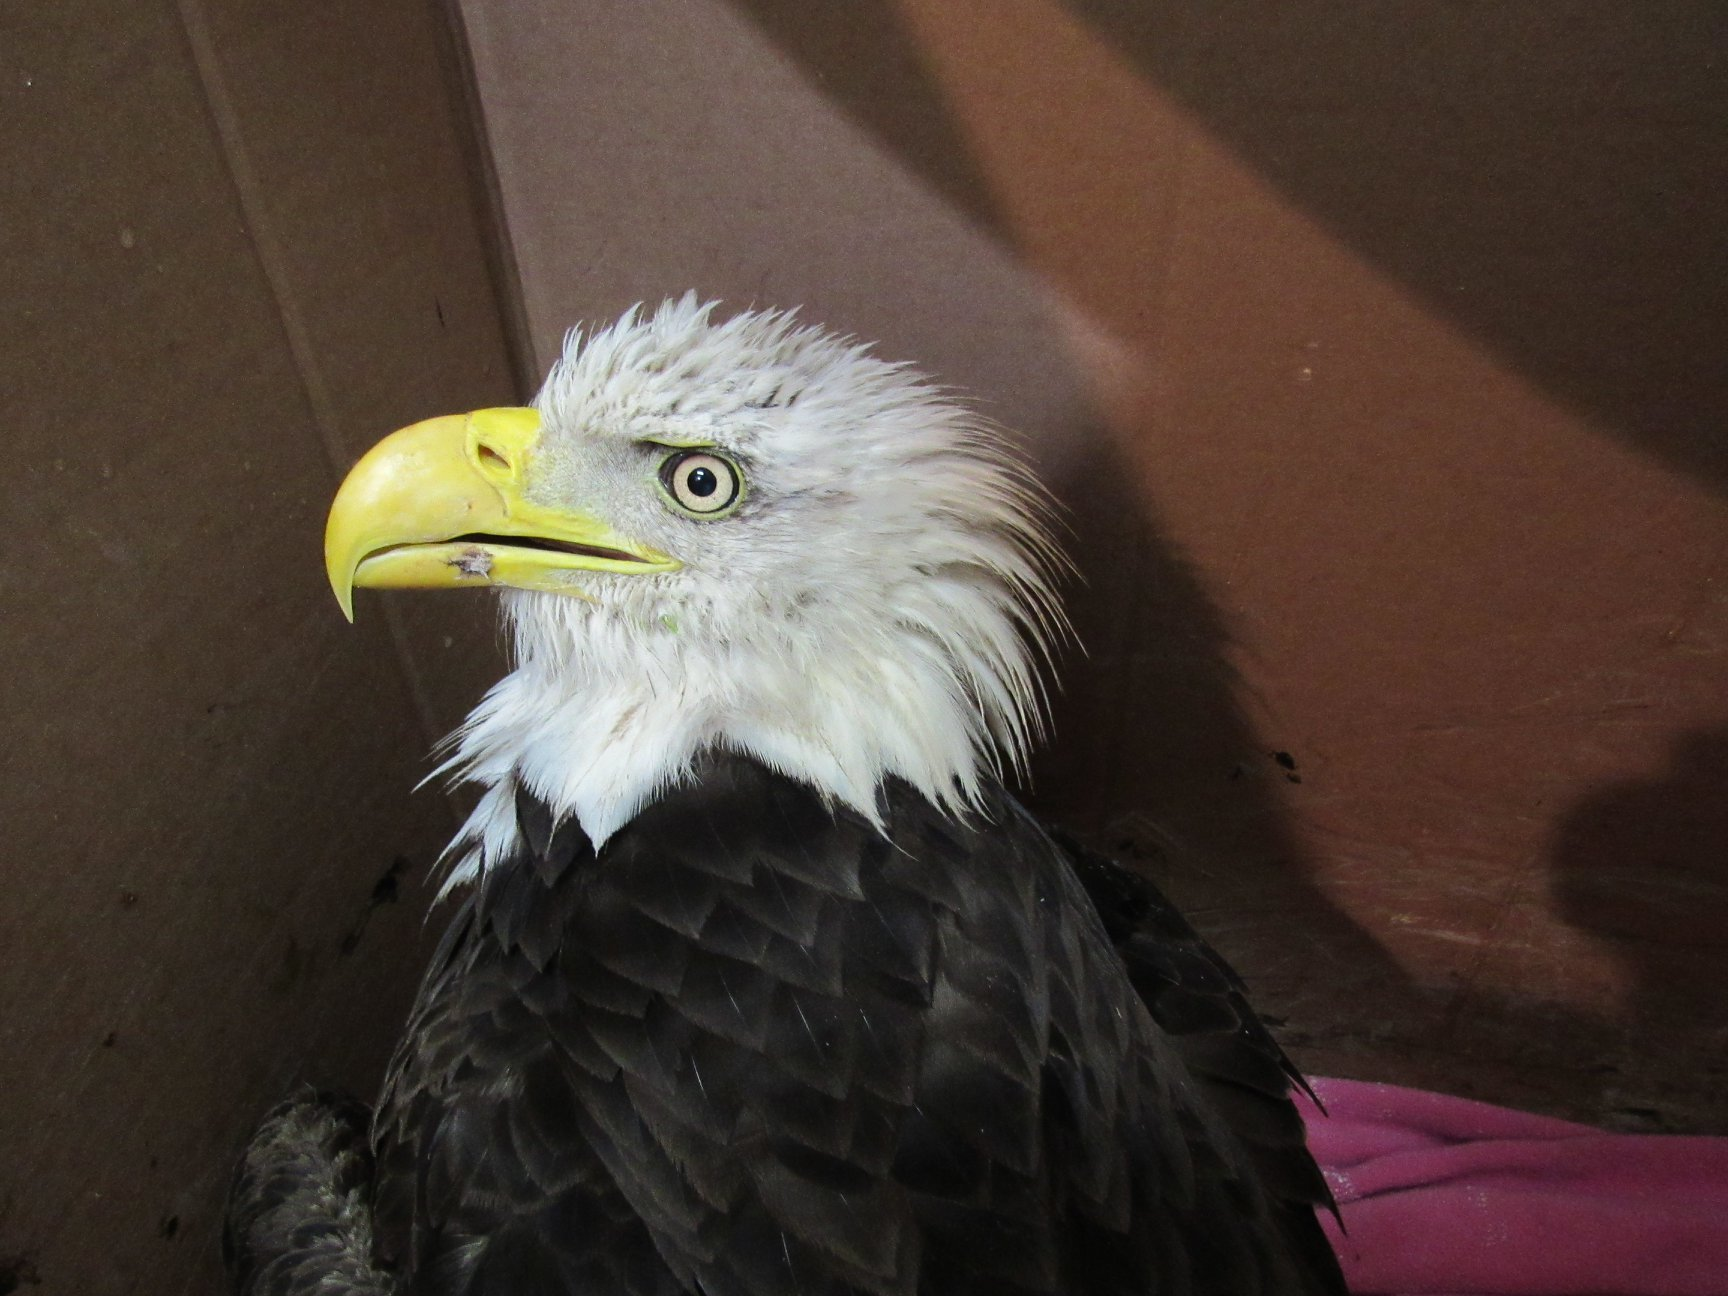 Another Bald Eagle with lead poisoning